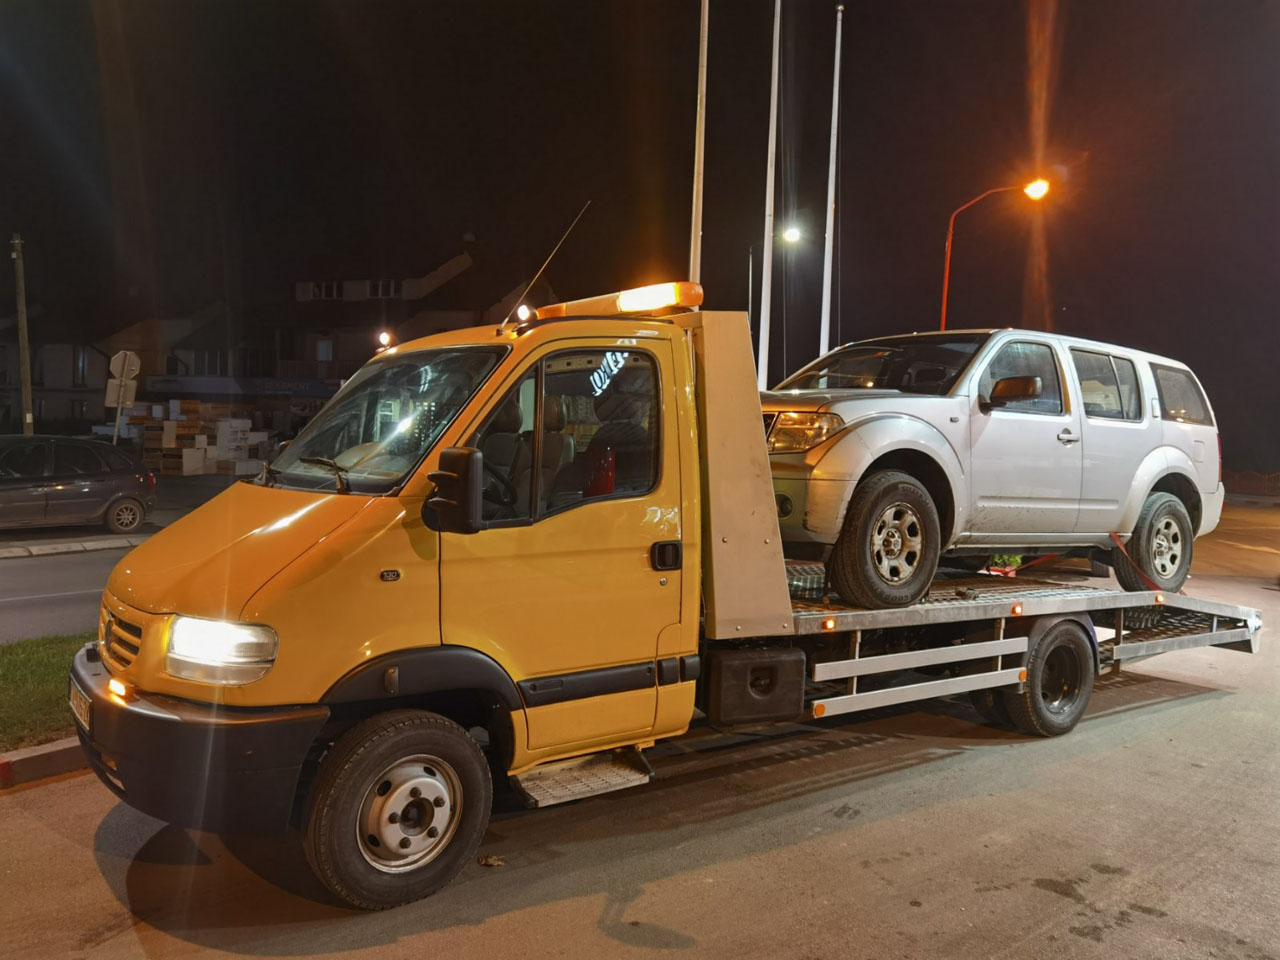 CAR AND TOWING SERVICE SEKULA 2006 Towing services Kraljevo - Photo 2